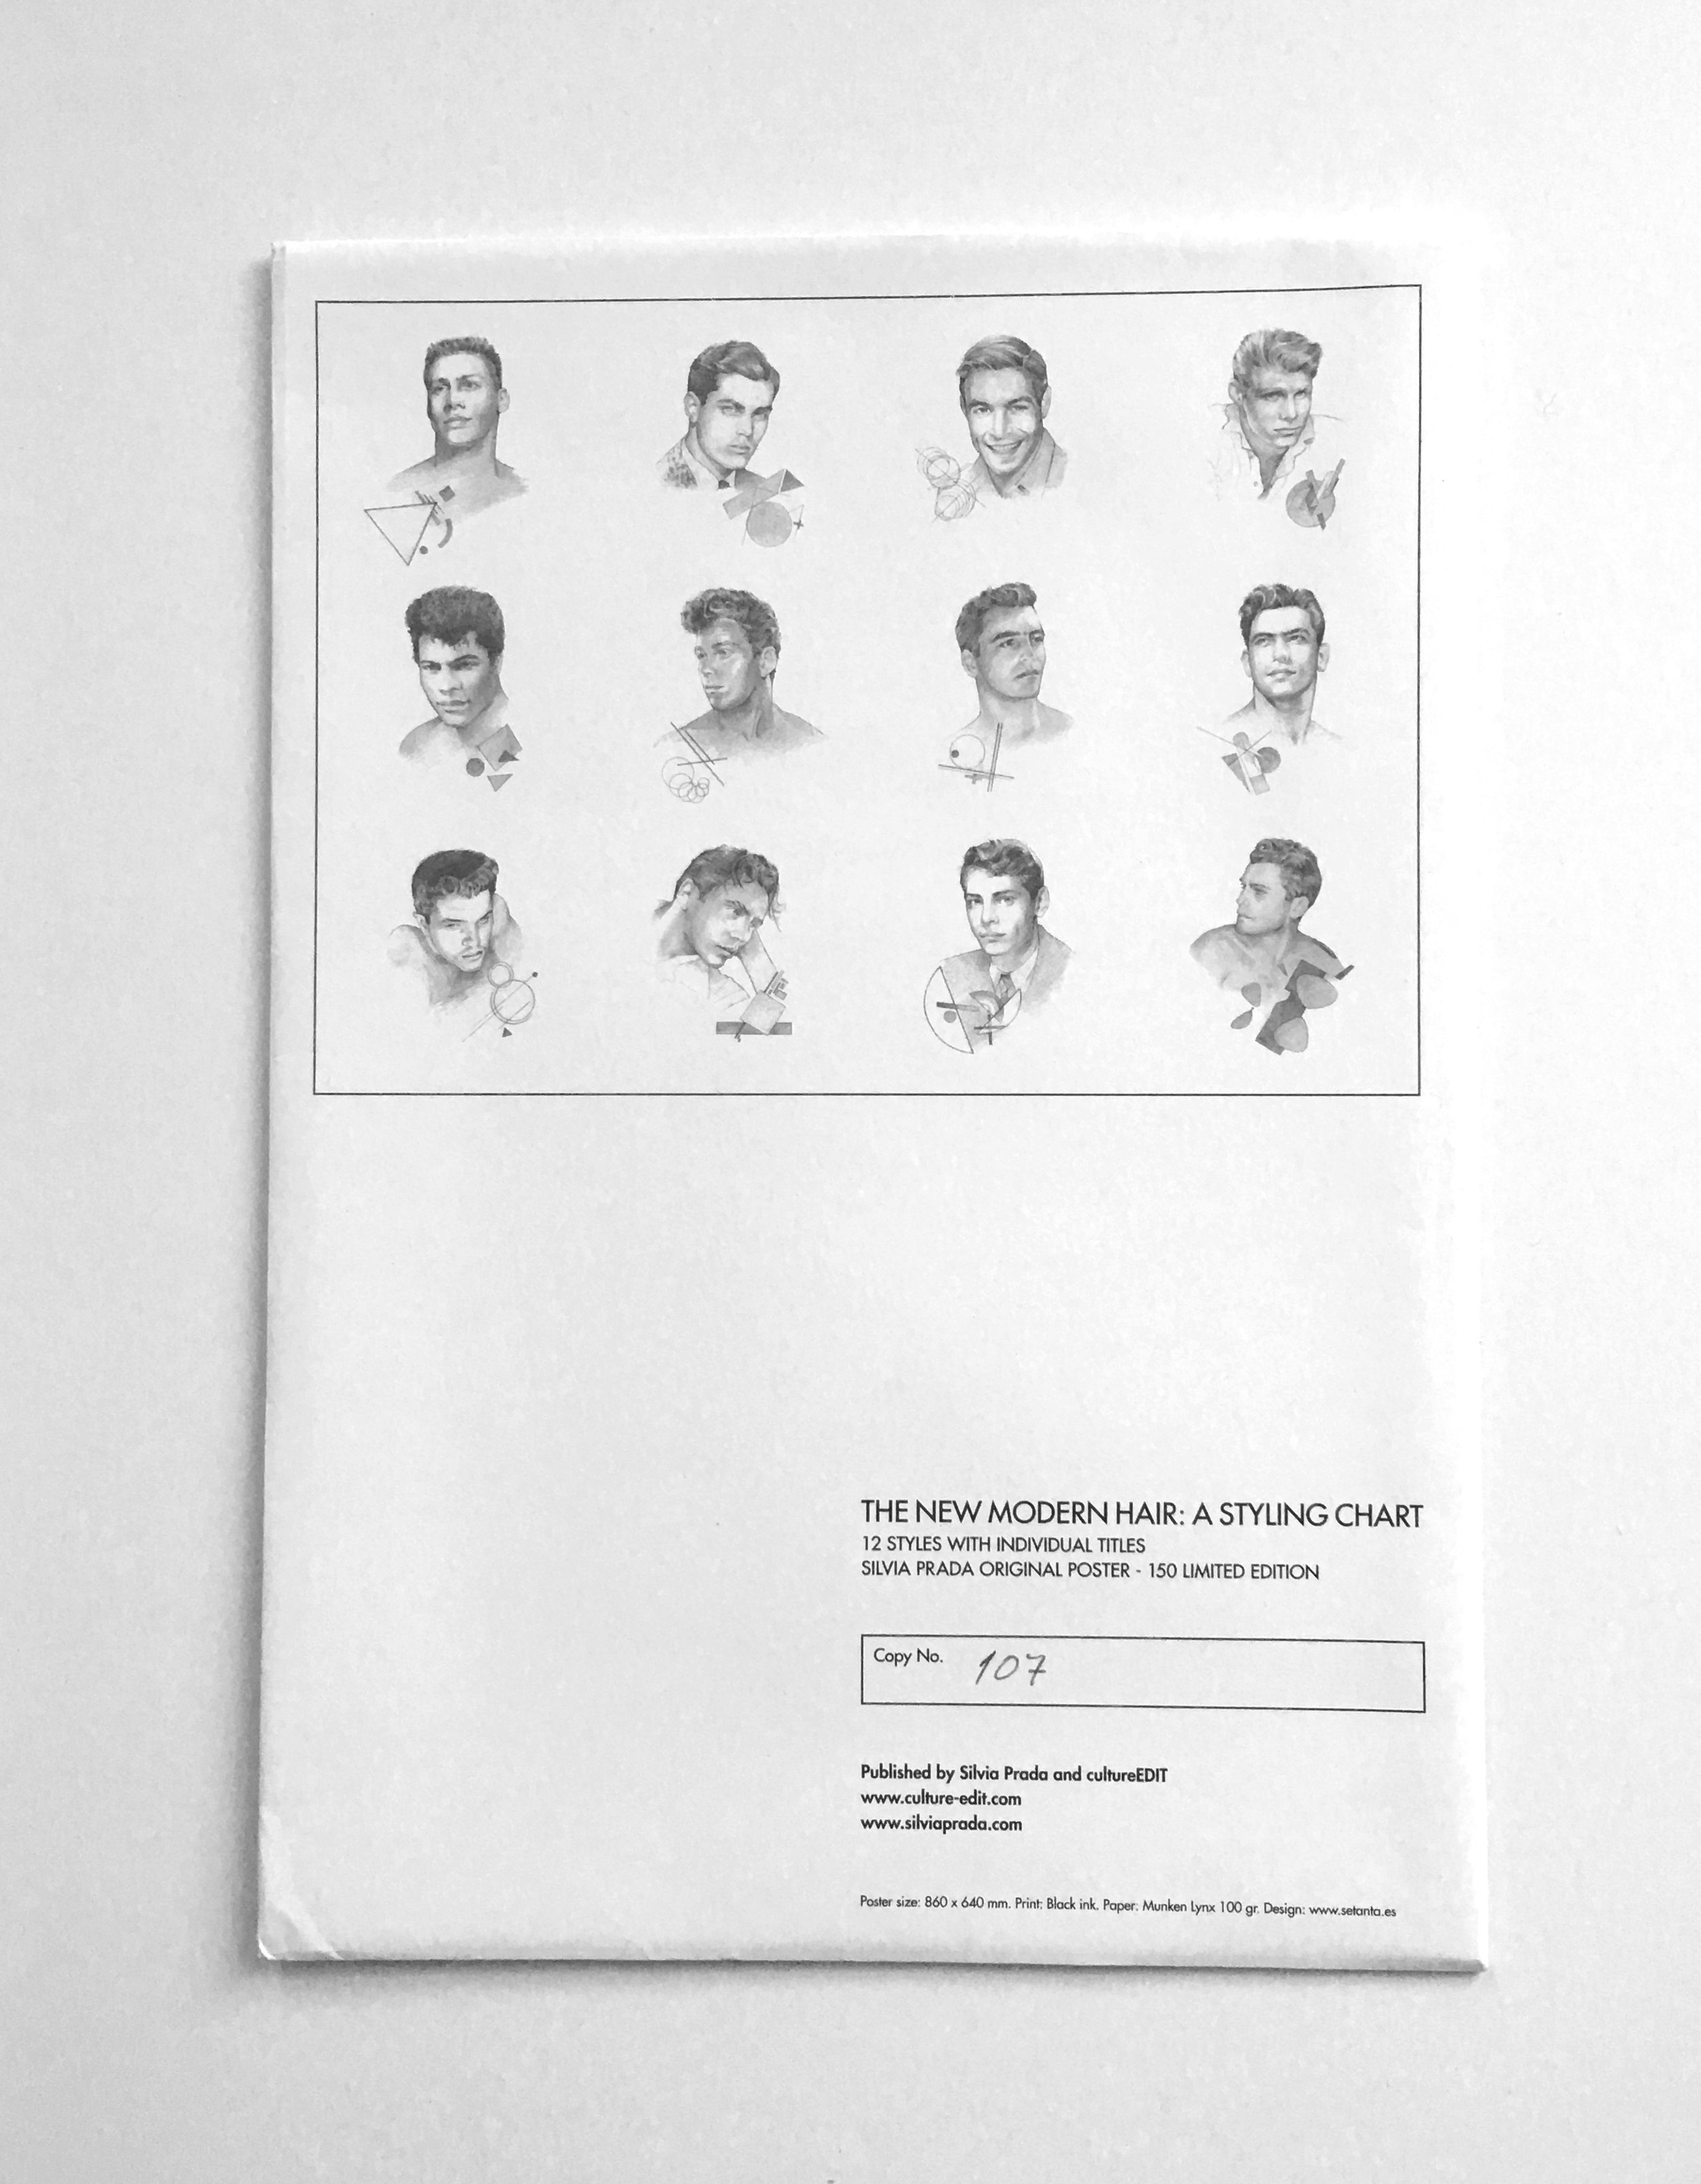 THE NEW MODERN HAIR: A STYLING CHART  BY SILVIA PRADA  LIMITED EDITION FOLD-OUT POSTER